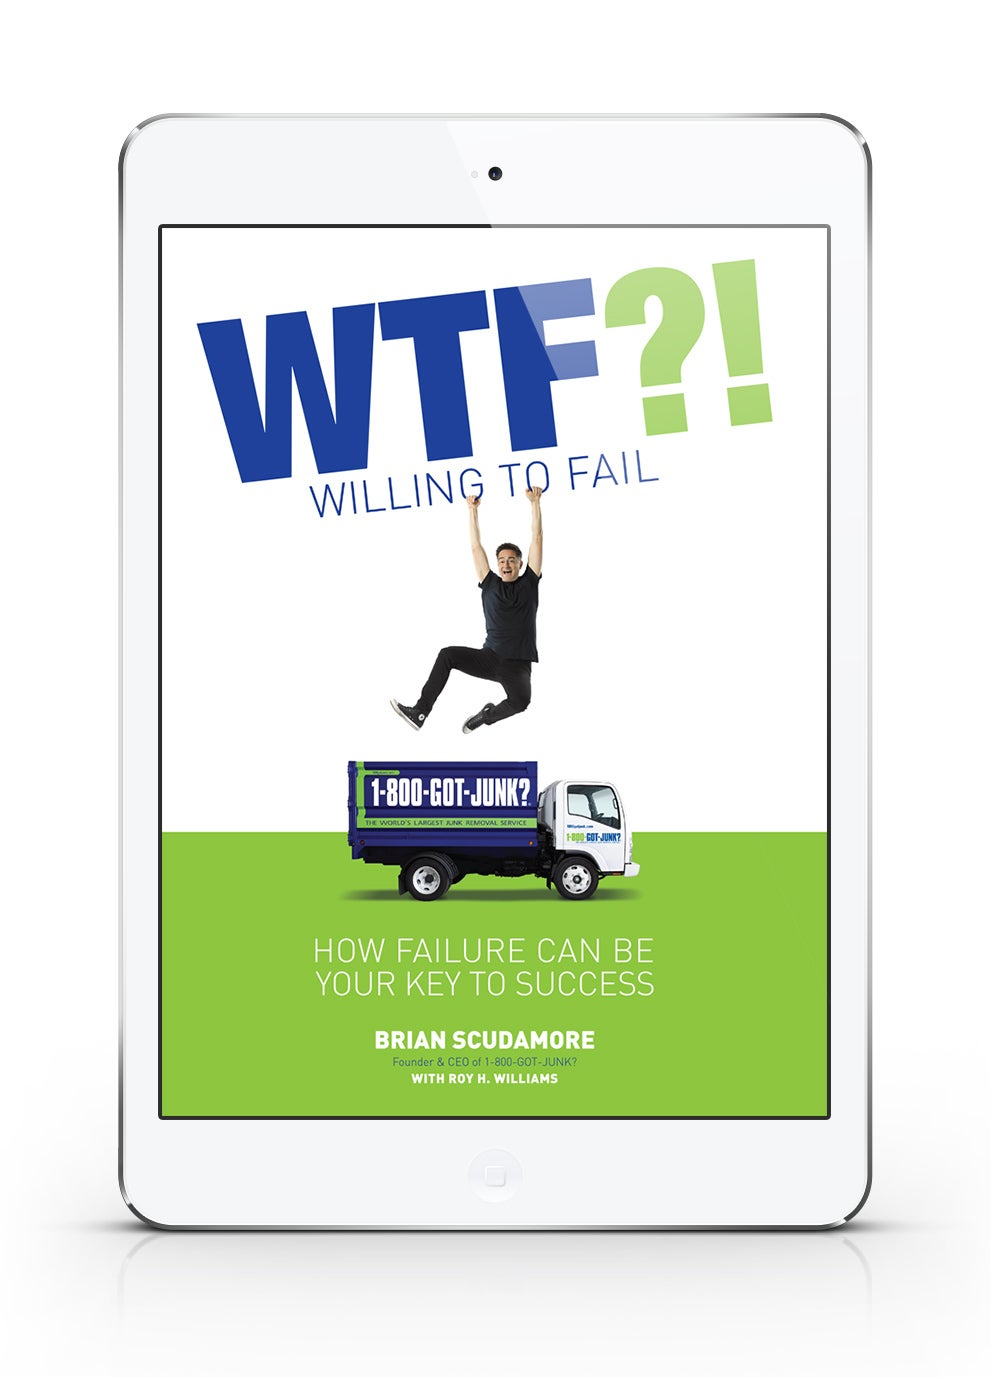 WTF (Willing to Fail): How Failure Can Be Your Key To Success